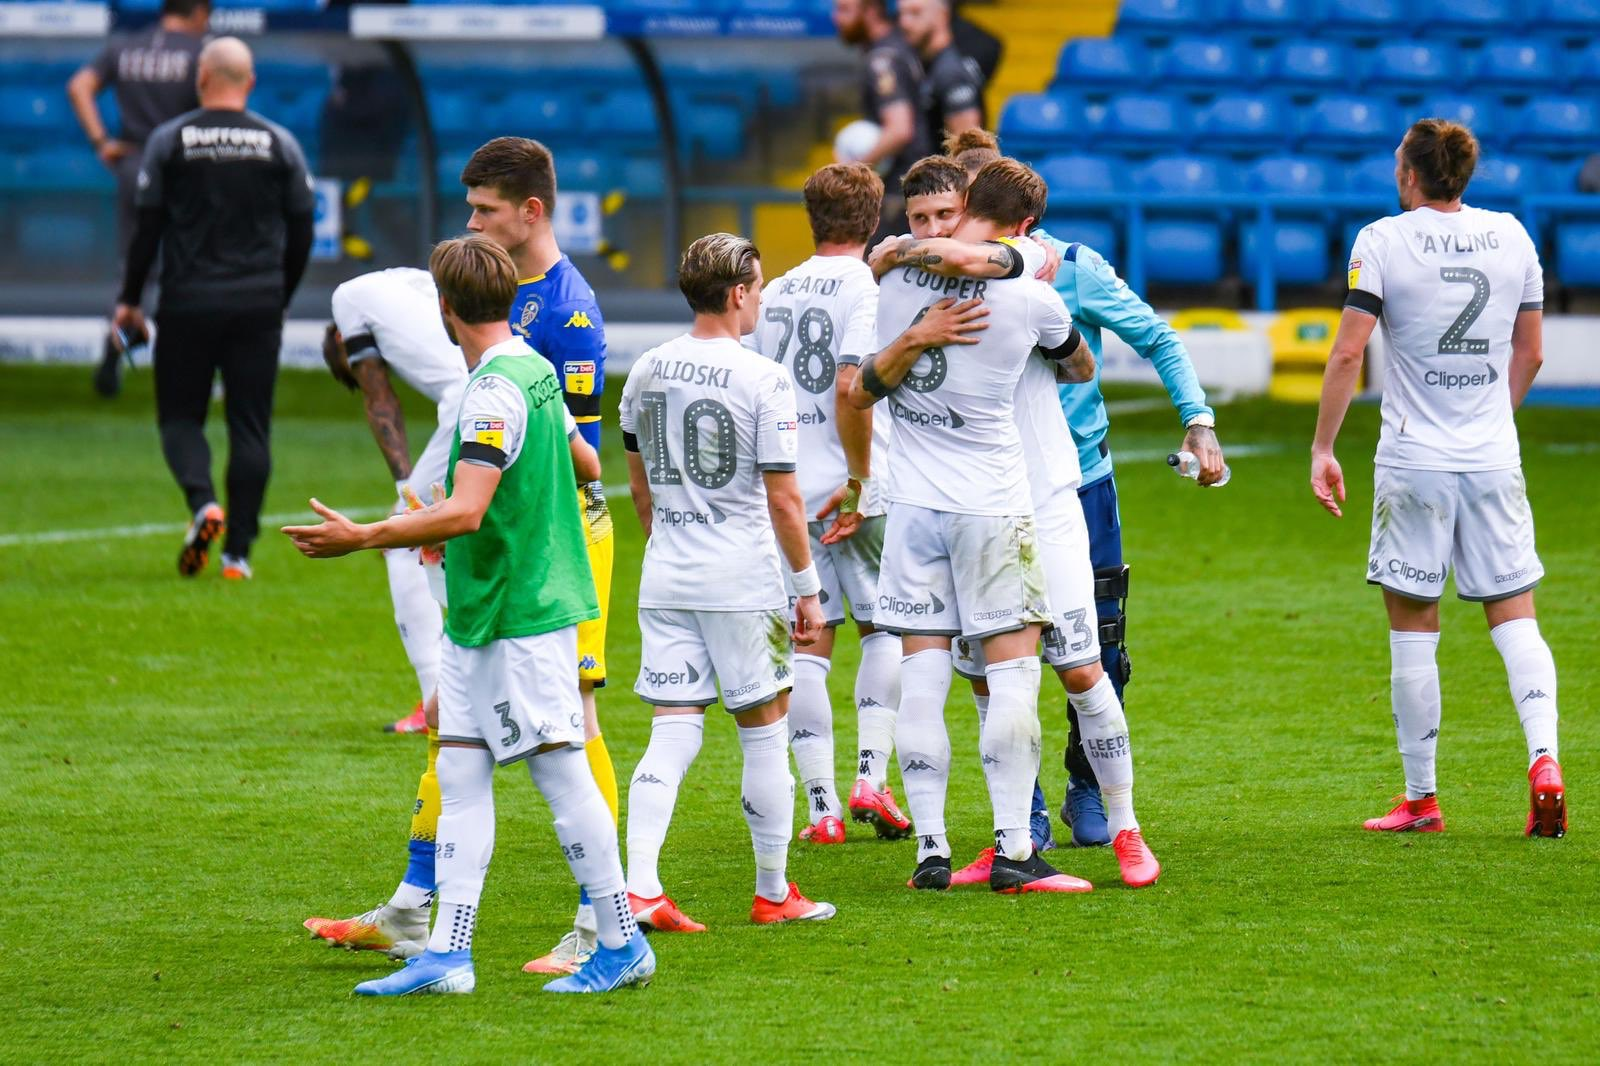 Leeds United Beat Ajayi's West Brom To Championship Crown